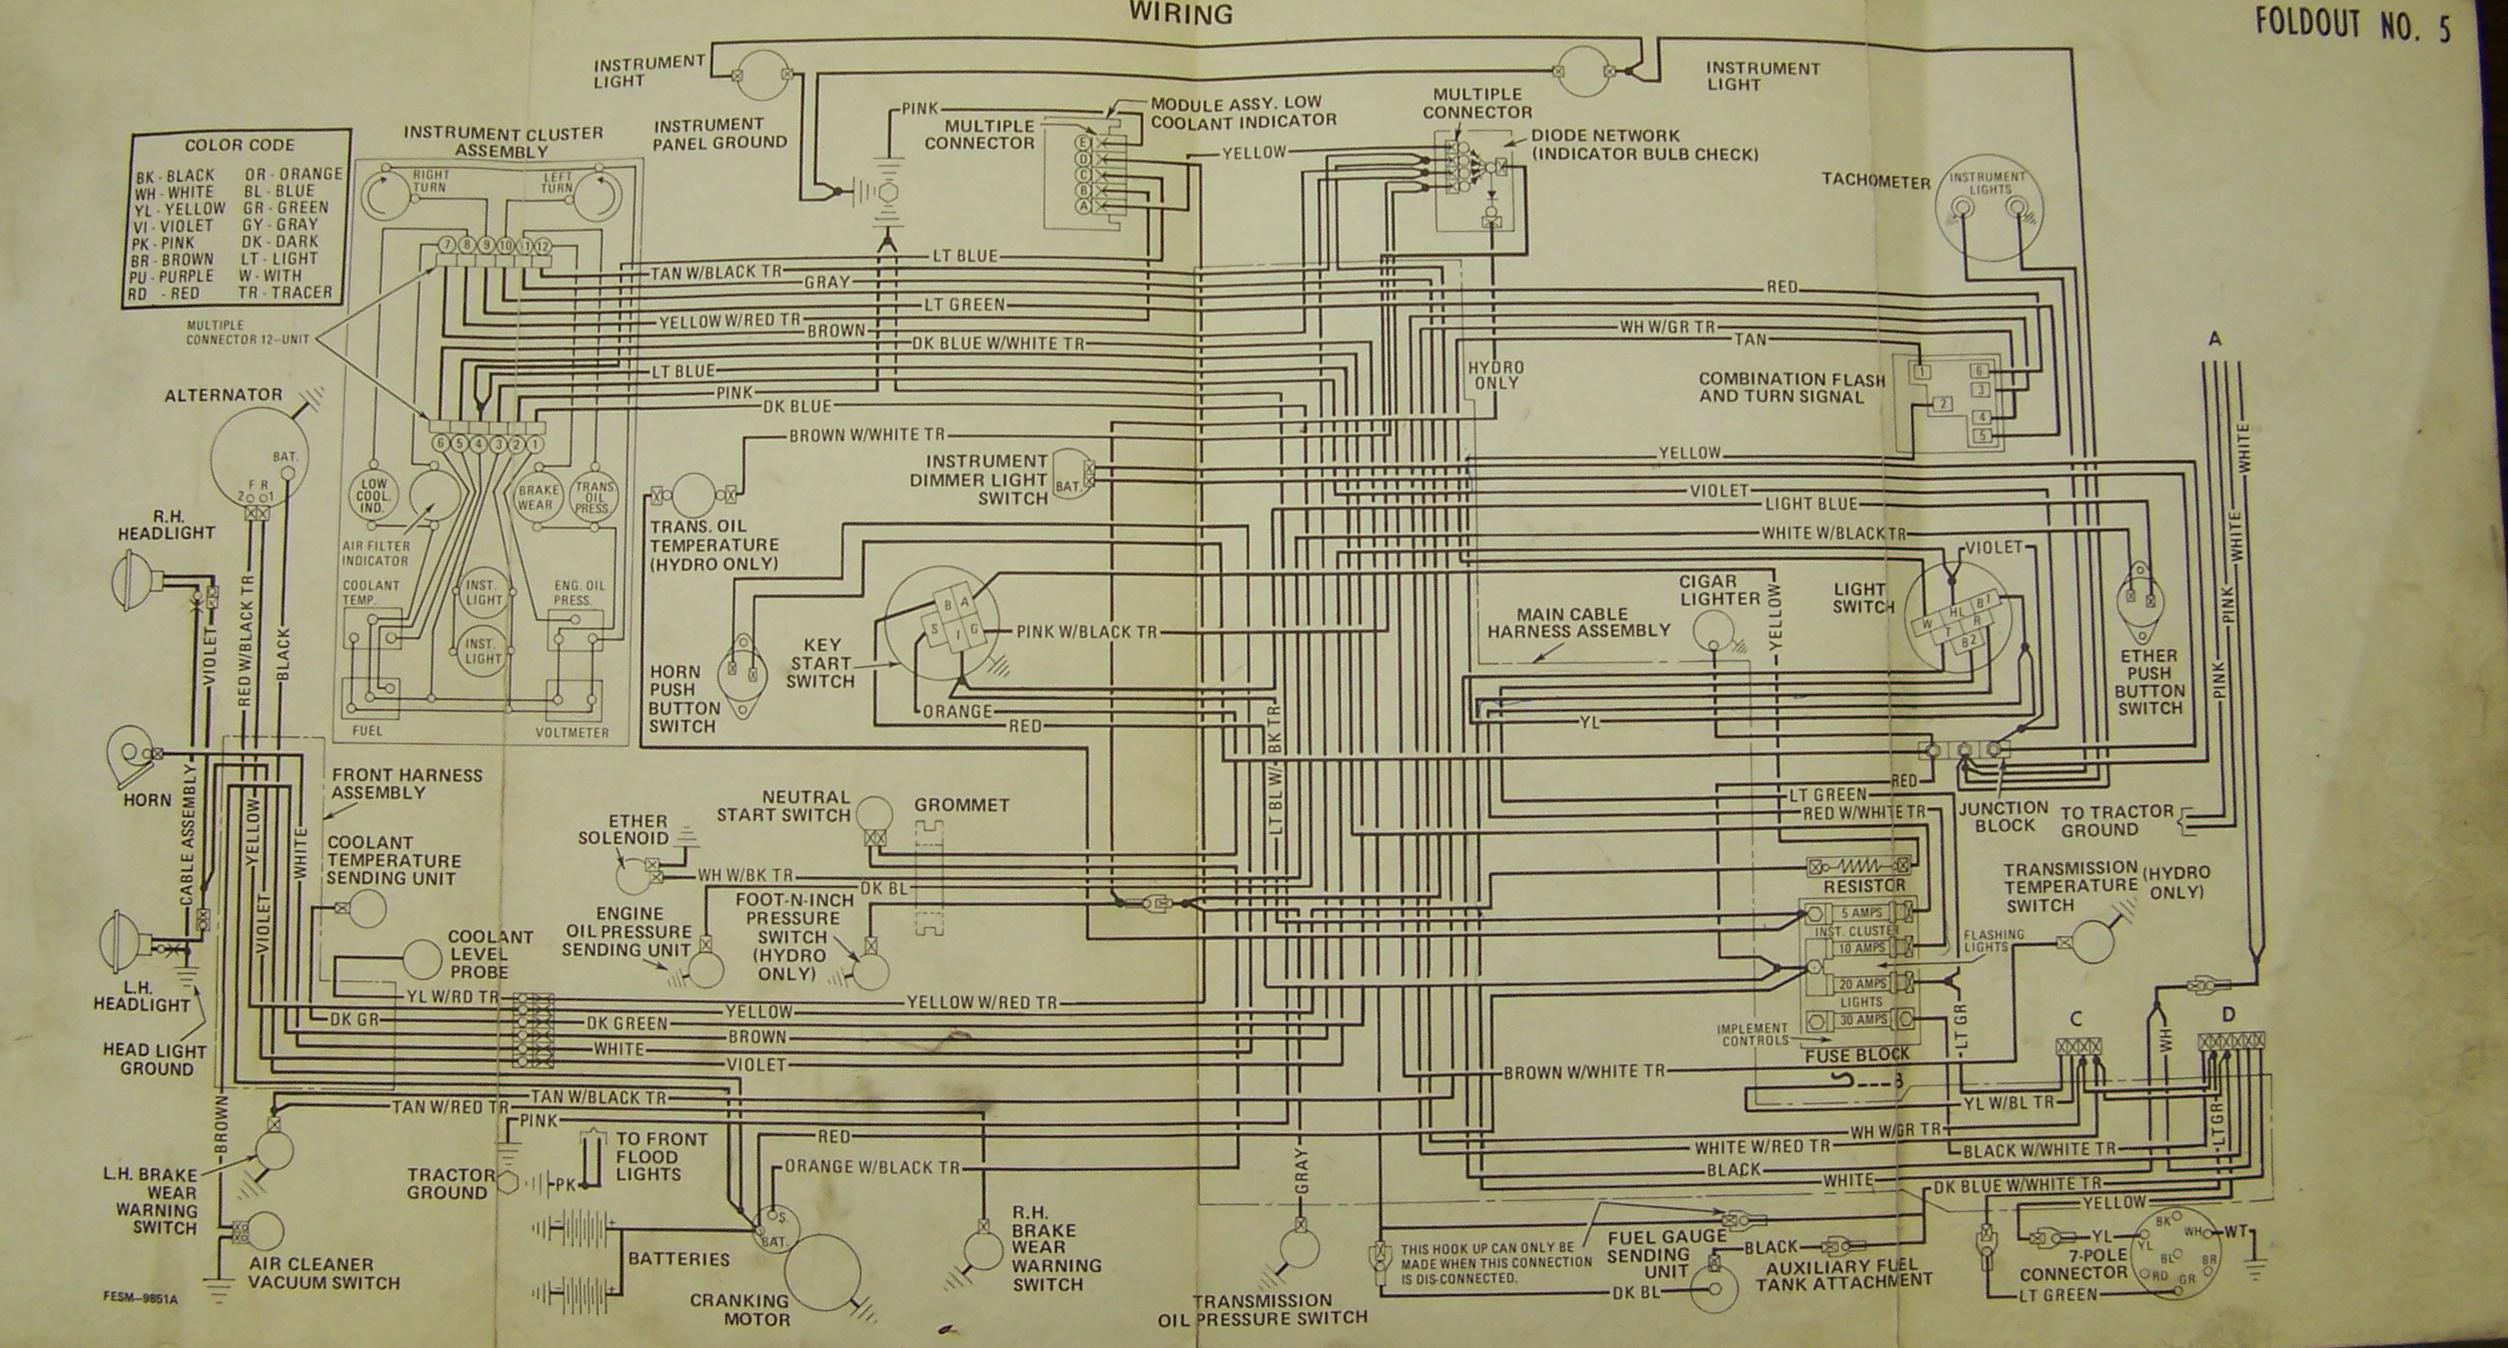 140 Farmall Wiring Schematic Custom Diagram Electrical Honda Ct90 Smart Diagrams Carter Gruenewald Co Inc Ih Tractor Rh Cngco Com 12 Volt